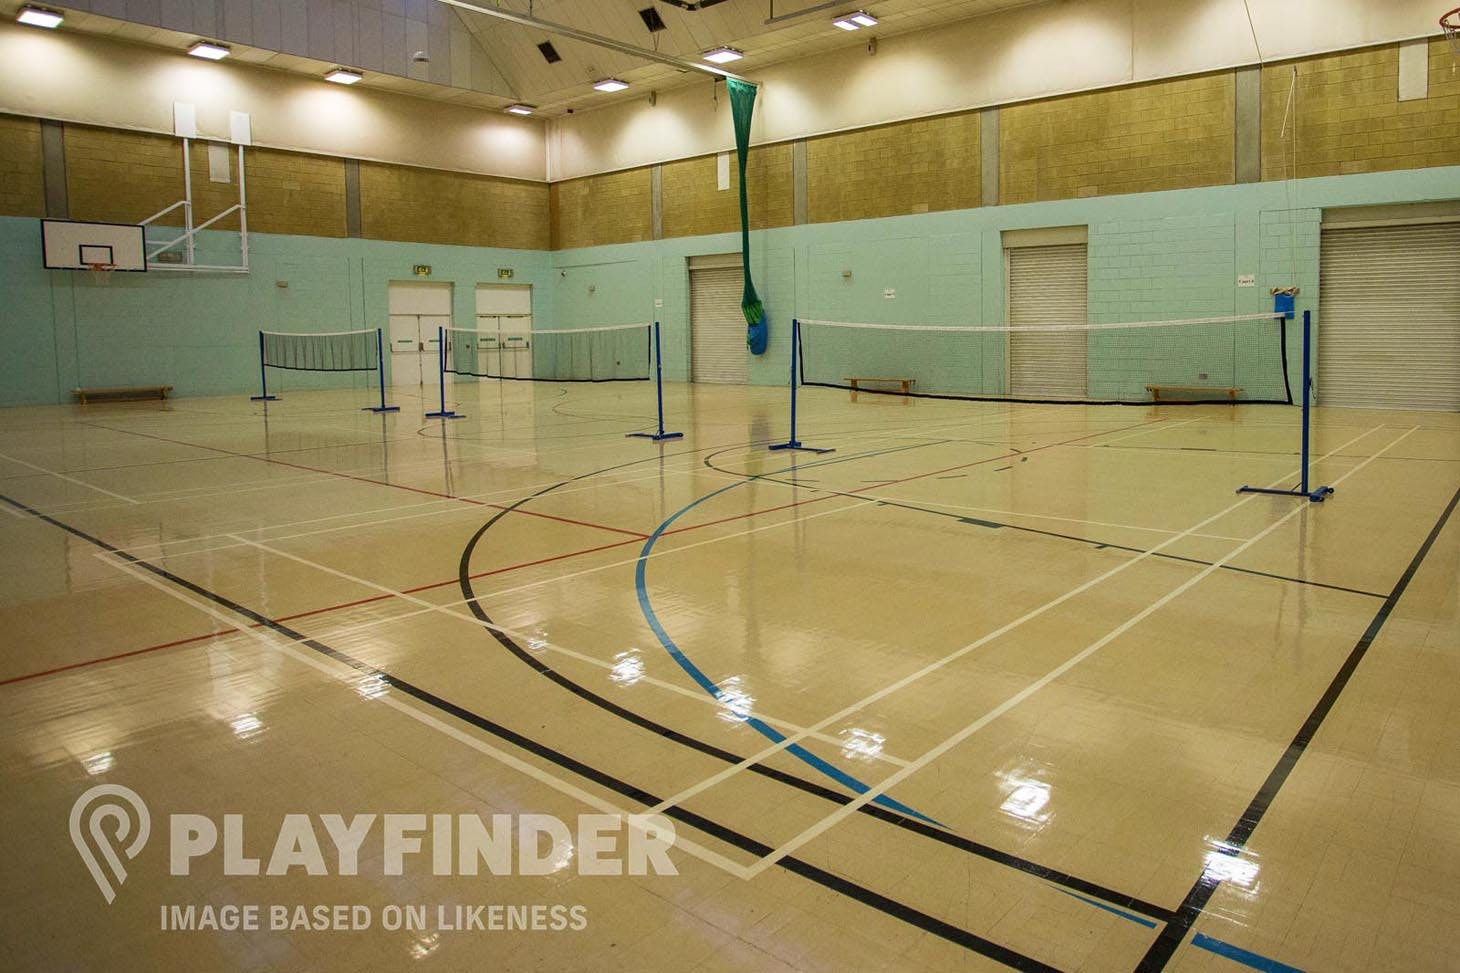 Co-op Academy Stoke-on-Trent Court | Sports hall badminton court